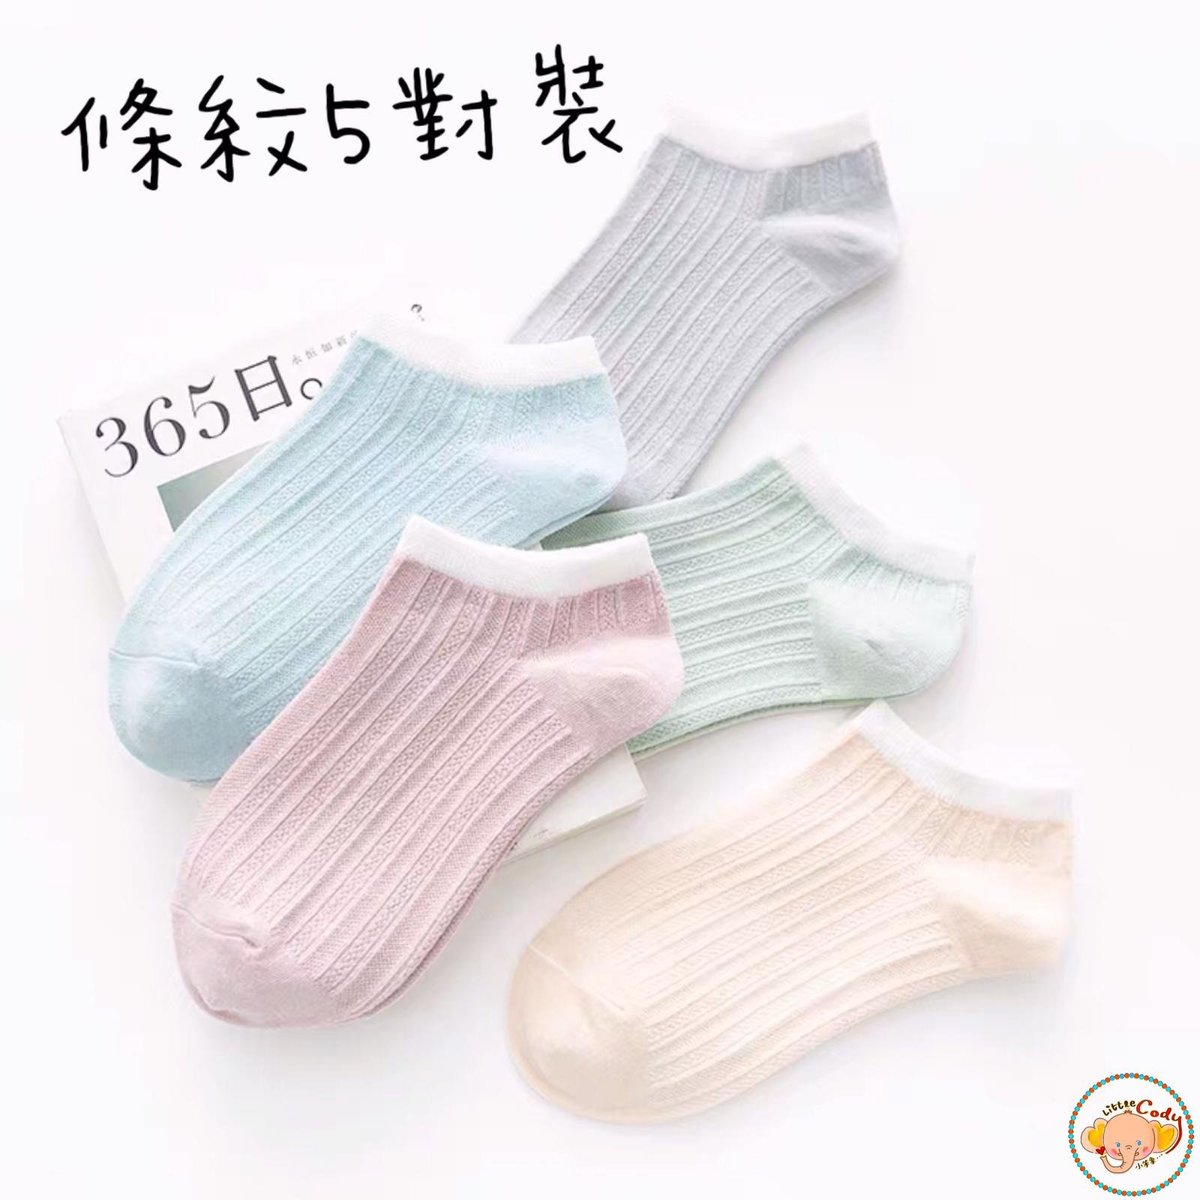 【5 Pairs, Random color】Japanese-style cotton boat Socks【Straight pattern】[[Parallel Import]